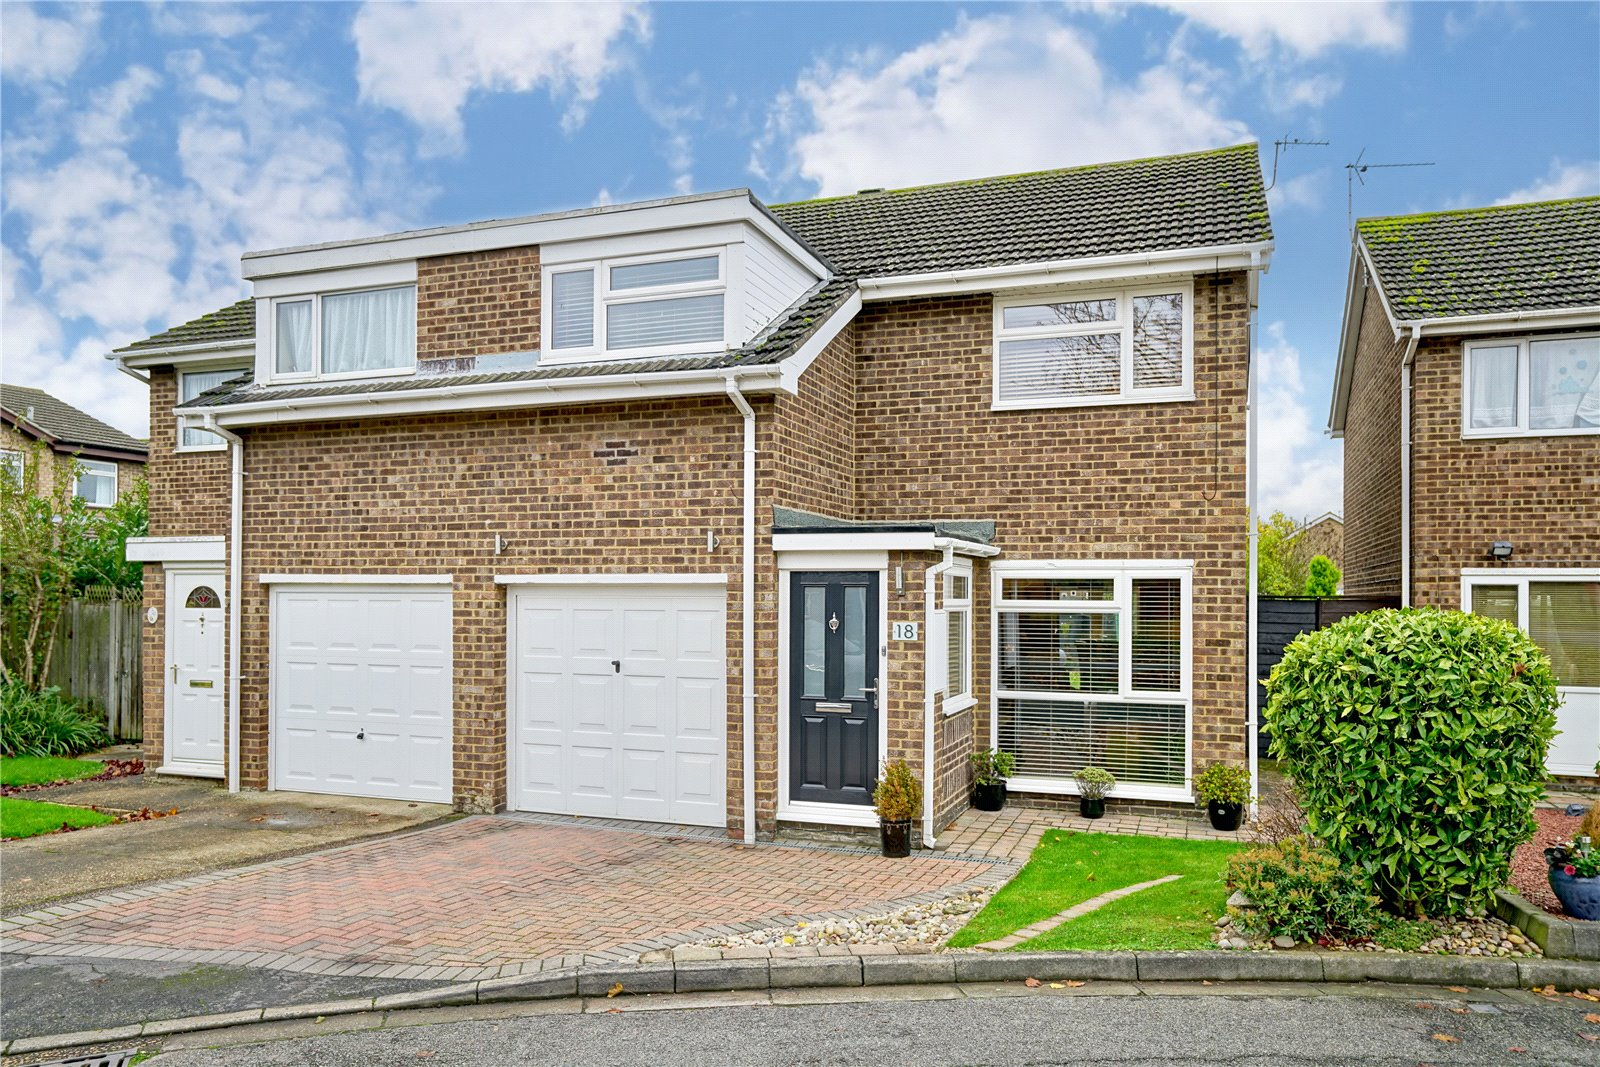 3 bed house for sale in Gainsborough Avenue, Eaton Ford  - Property Image 1